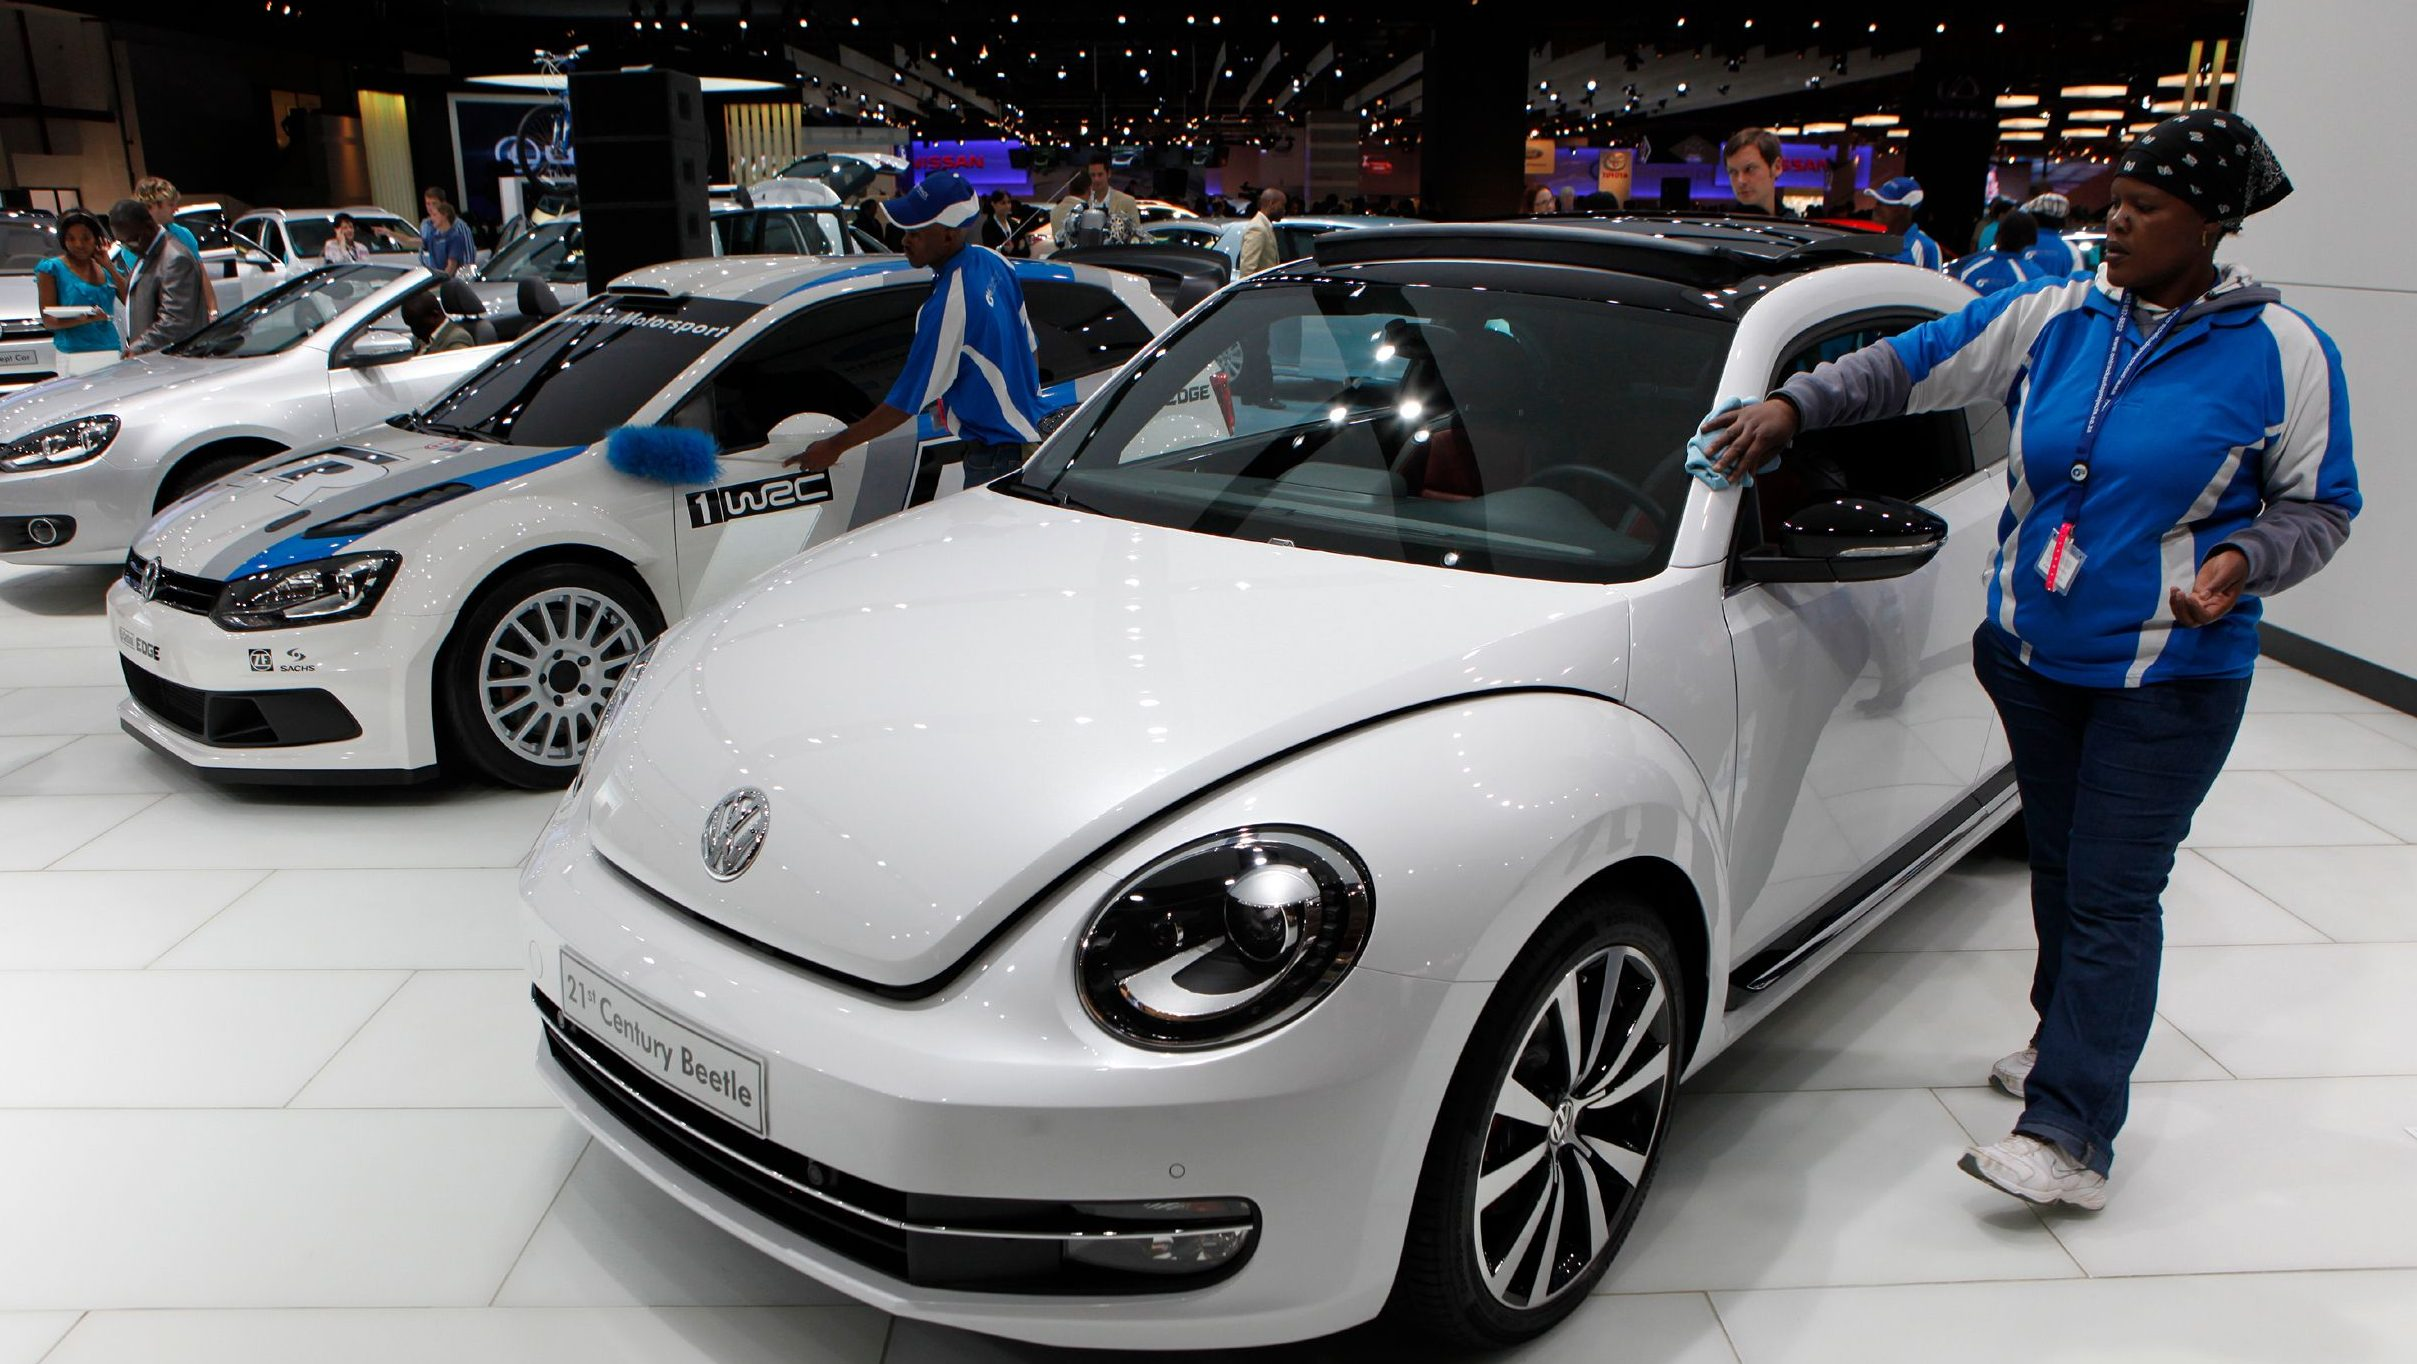 A worker cleans a 2012 Volkswagen 21st Century Beetle during the Johannesburg International Motor Show at Nasrec in Johannesburg October 6, 2011.